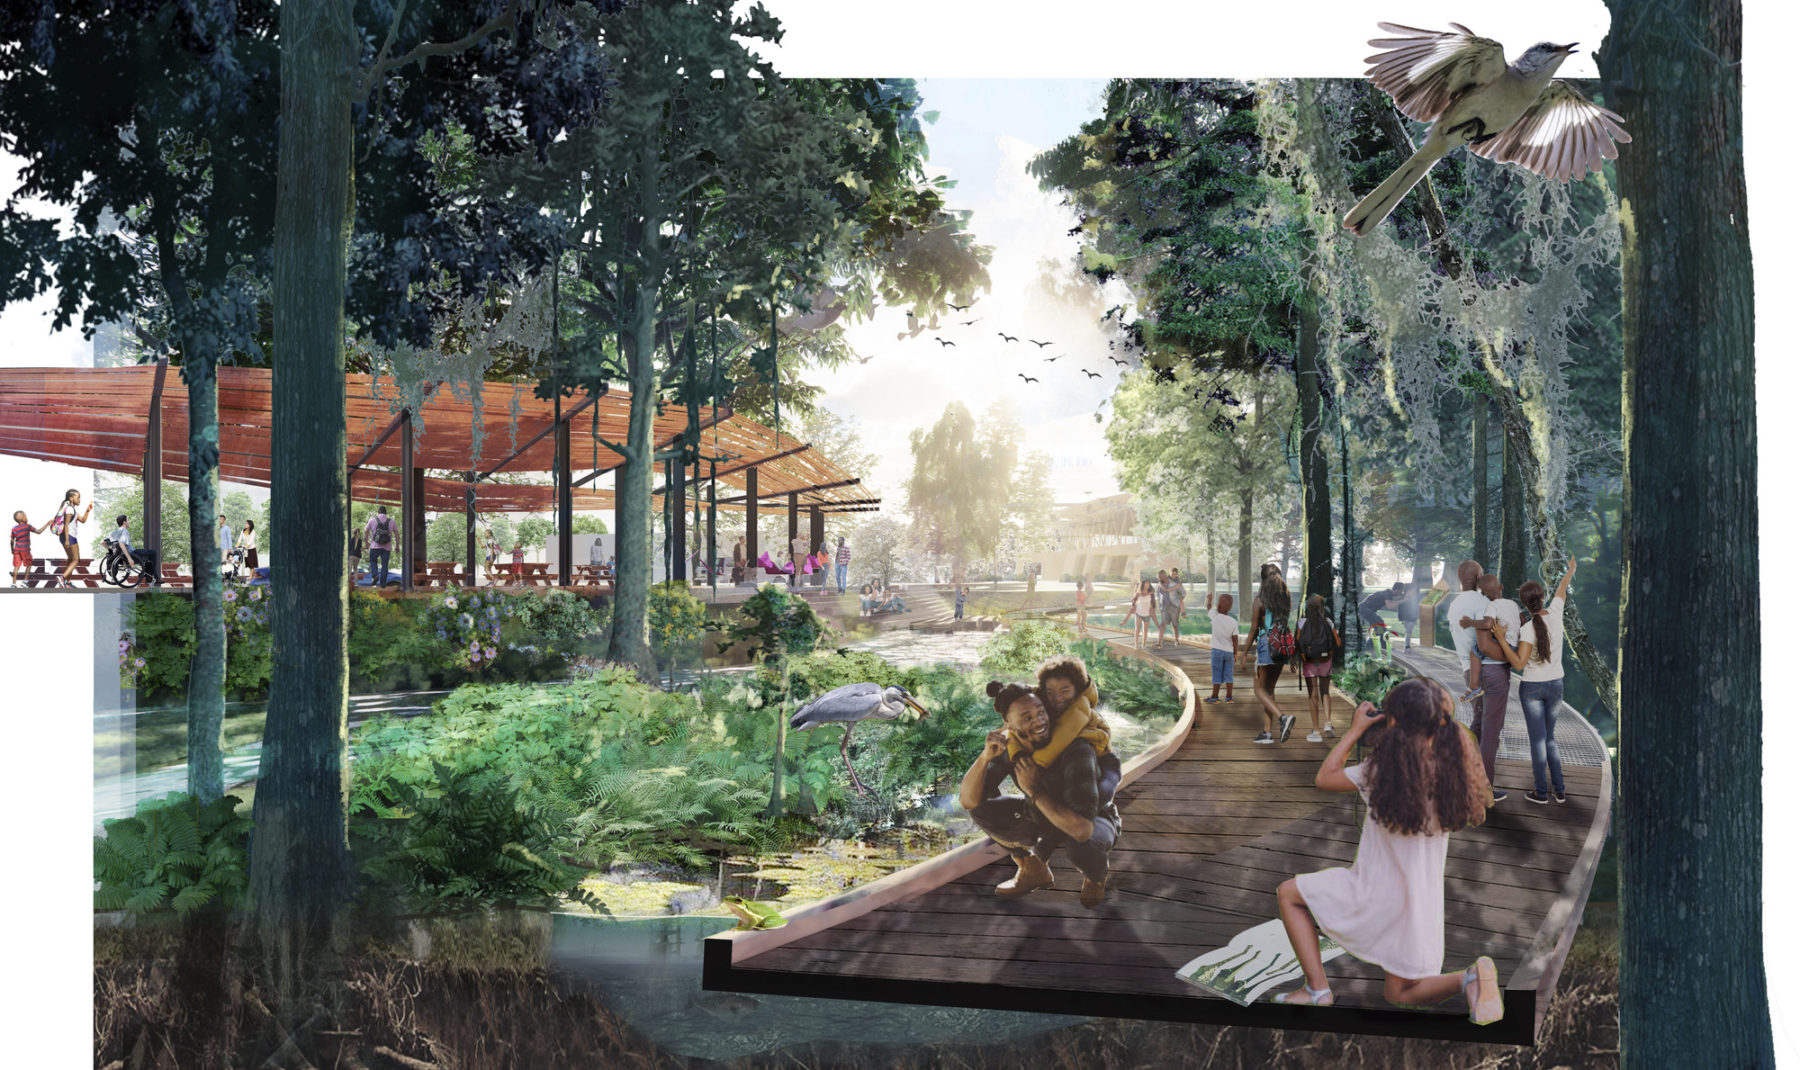 Rendering of the Bayou promenade. Families pose for pictures with wildlife along the walk.